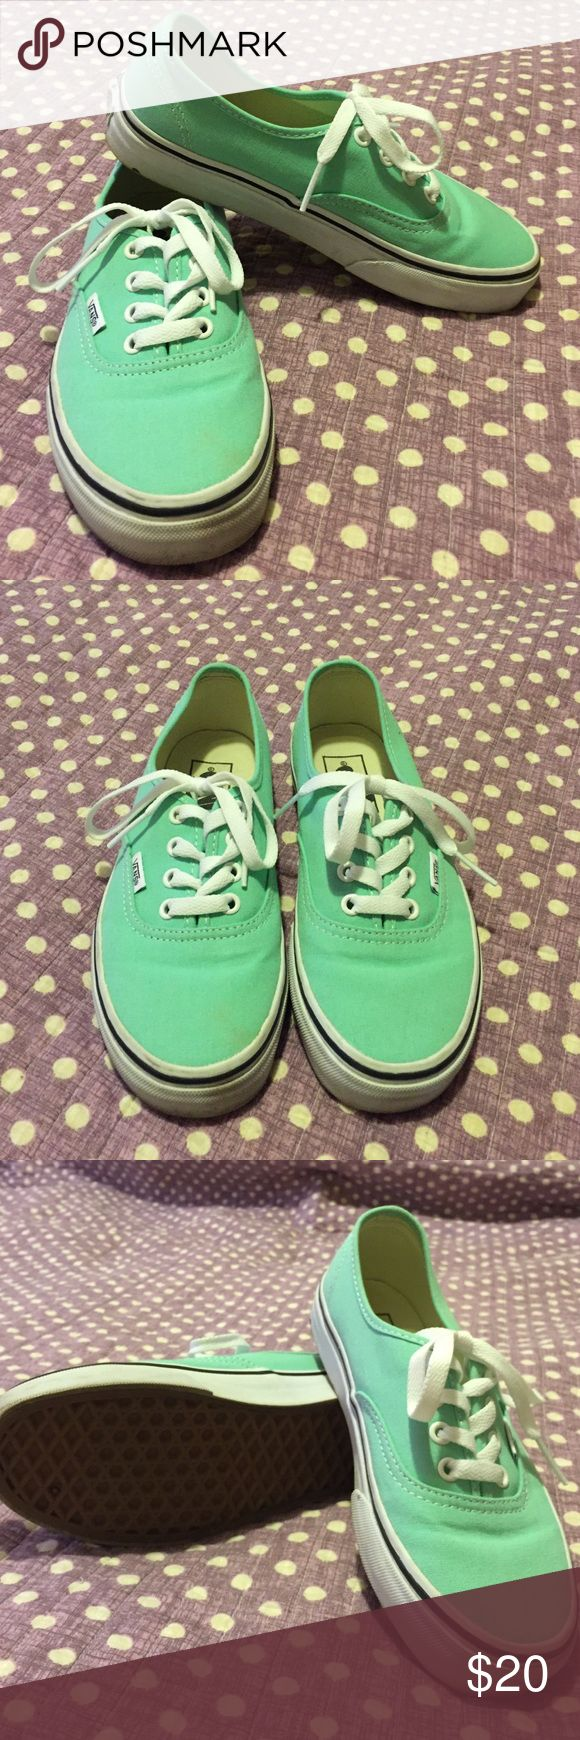 New teal Vans New, fresh and clean! Teal Vans Vans Shoes Sneakers